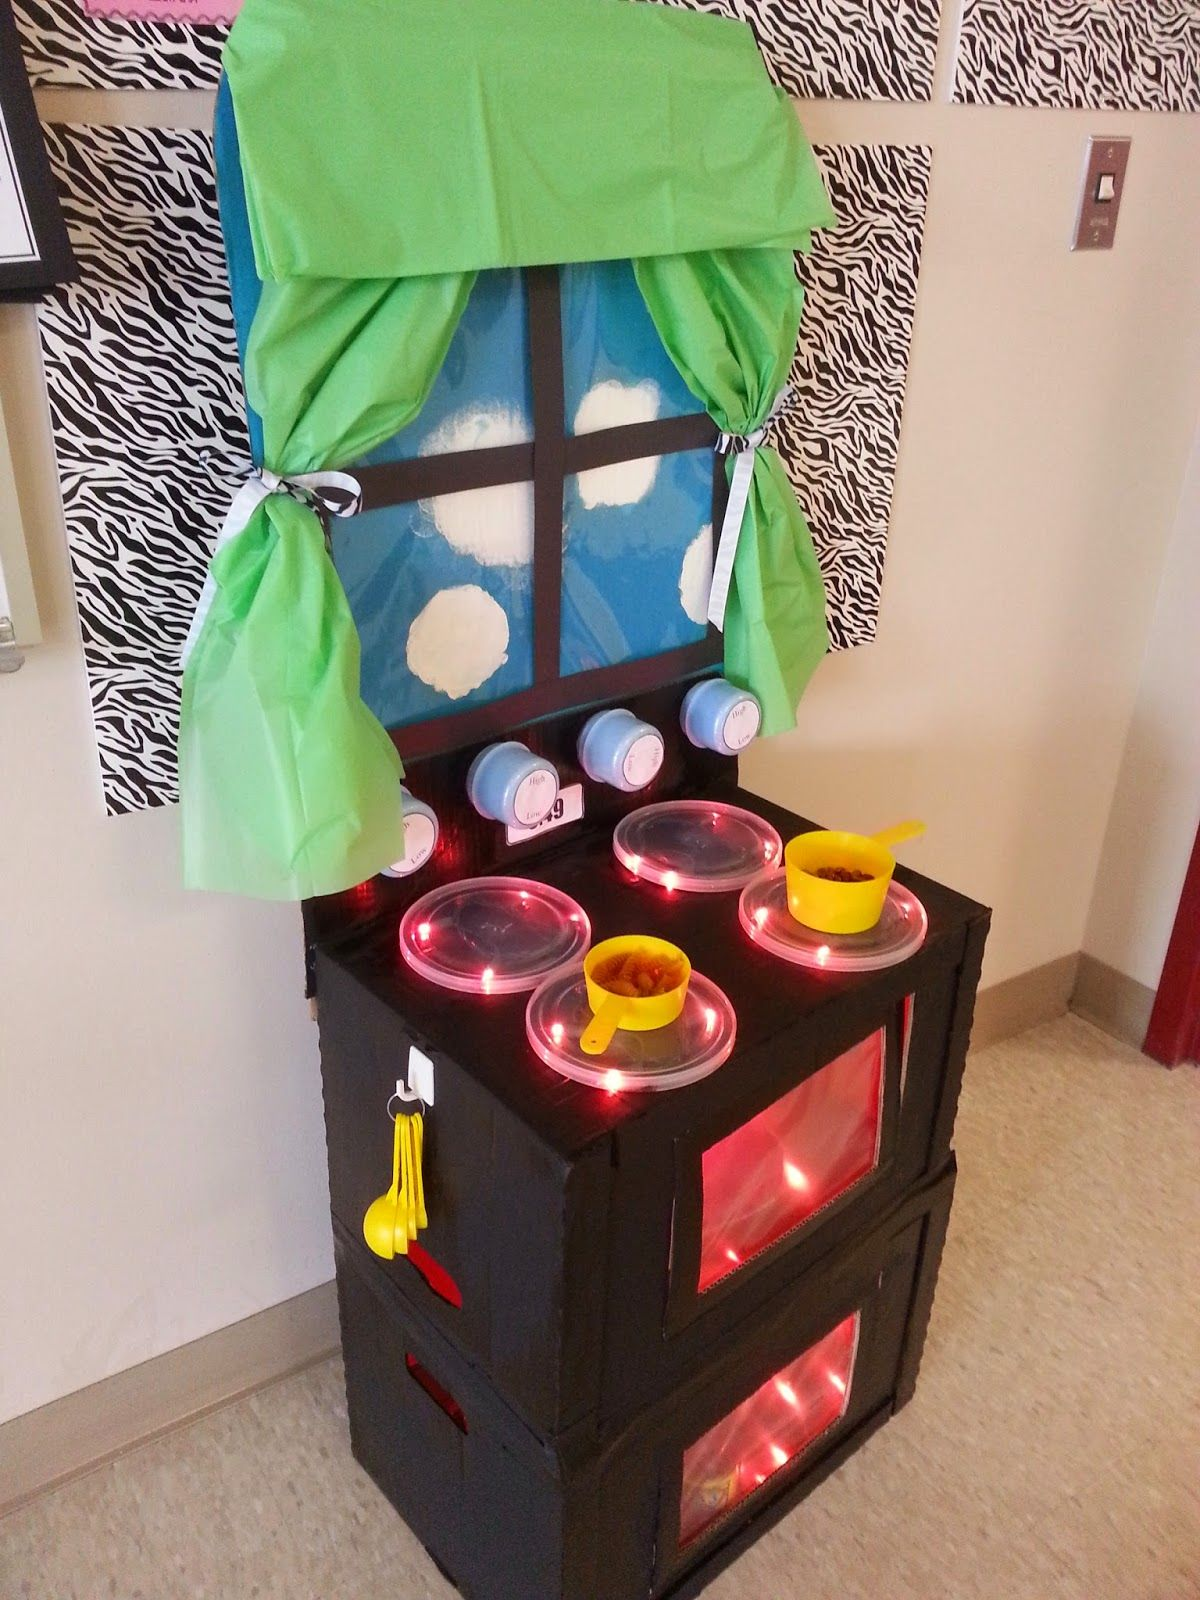 Food Drive Box Decorating Contest, Cardboard Oven / Stove